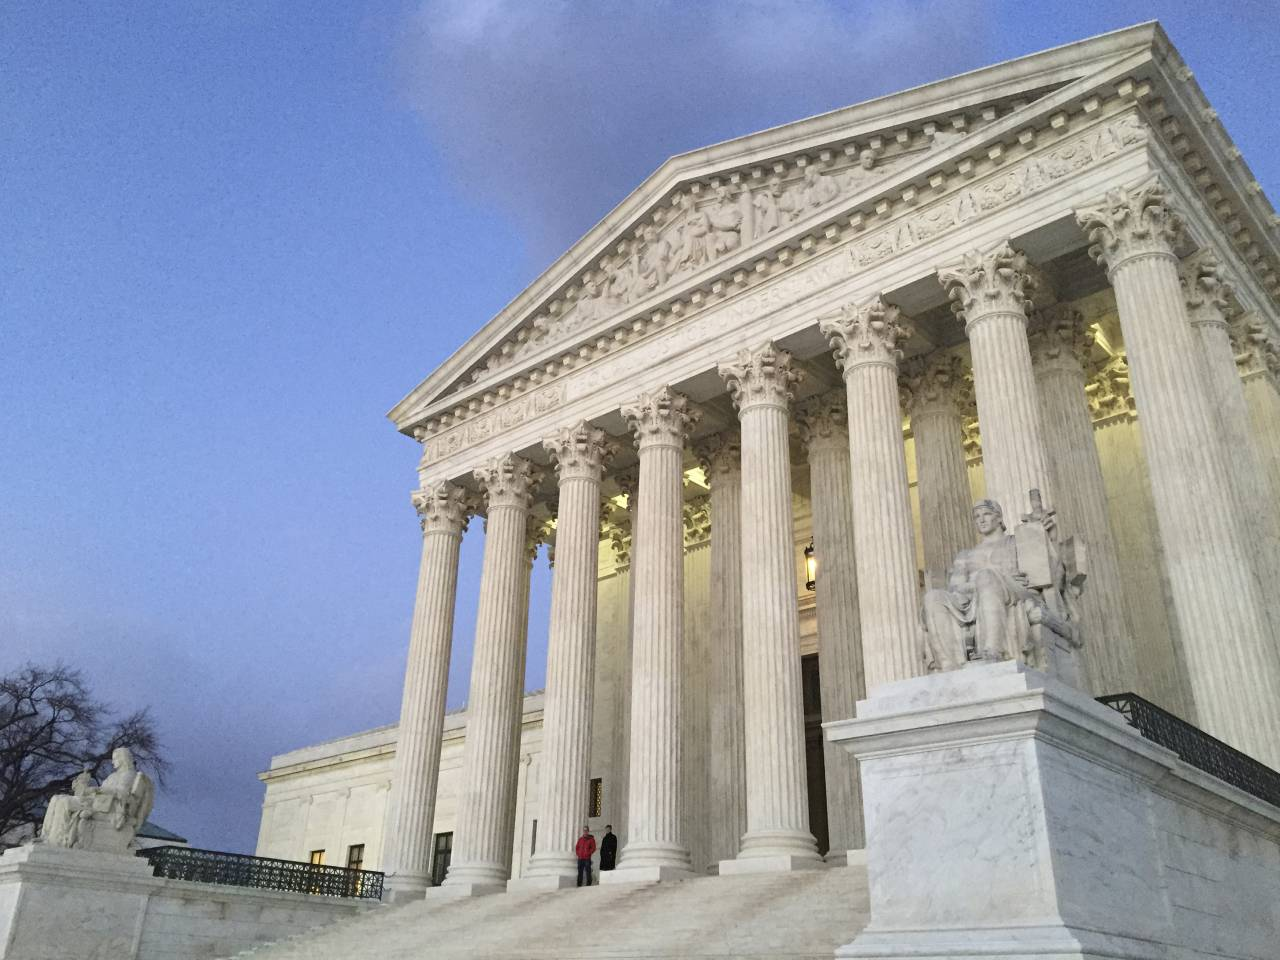 of the most destructive right wing supreme court decisions in  5 of the most destructive right wing supreme court decisions in american history com